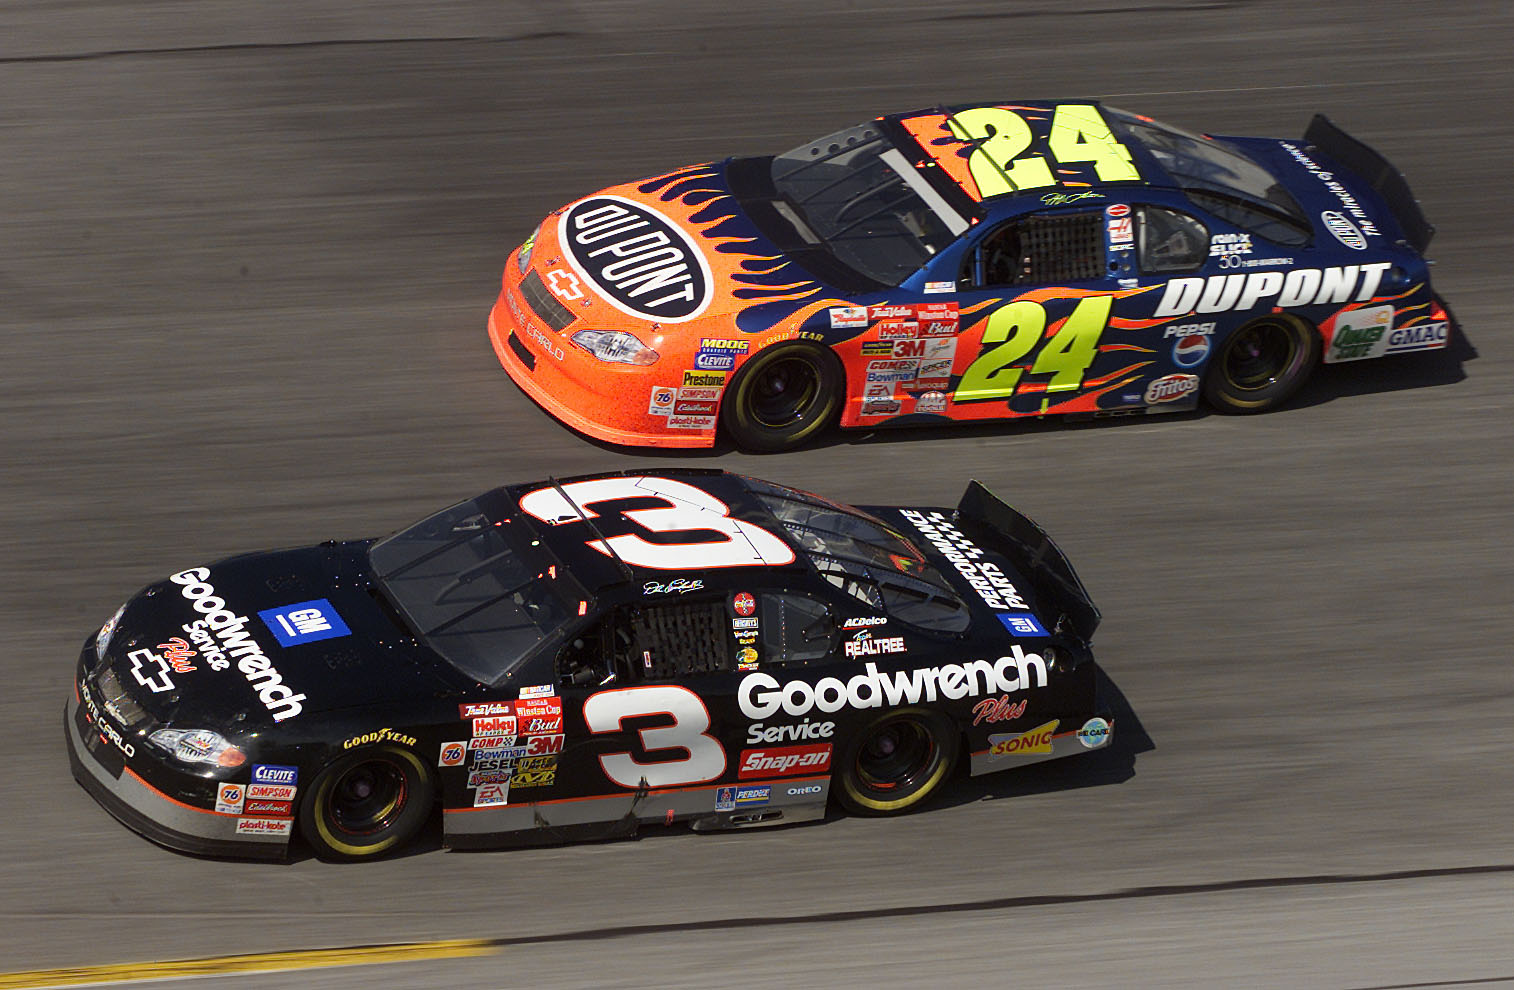 18 Feb 2001: Dale Earnhardt in the #3 GM Goodwrench Chevrolet dices with Jeff Gordon in the #24 DuPont Chevrolet during the NASCAR Winston Cup Daytona 500 at the Daytona International Speedway in Daytona Beach, Florida.  DIGITAL IMAGE. Mandatory Credit: J